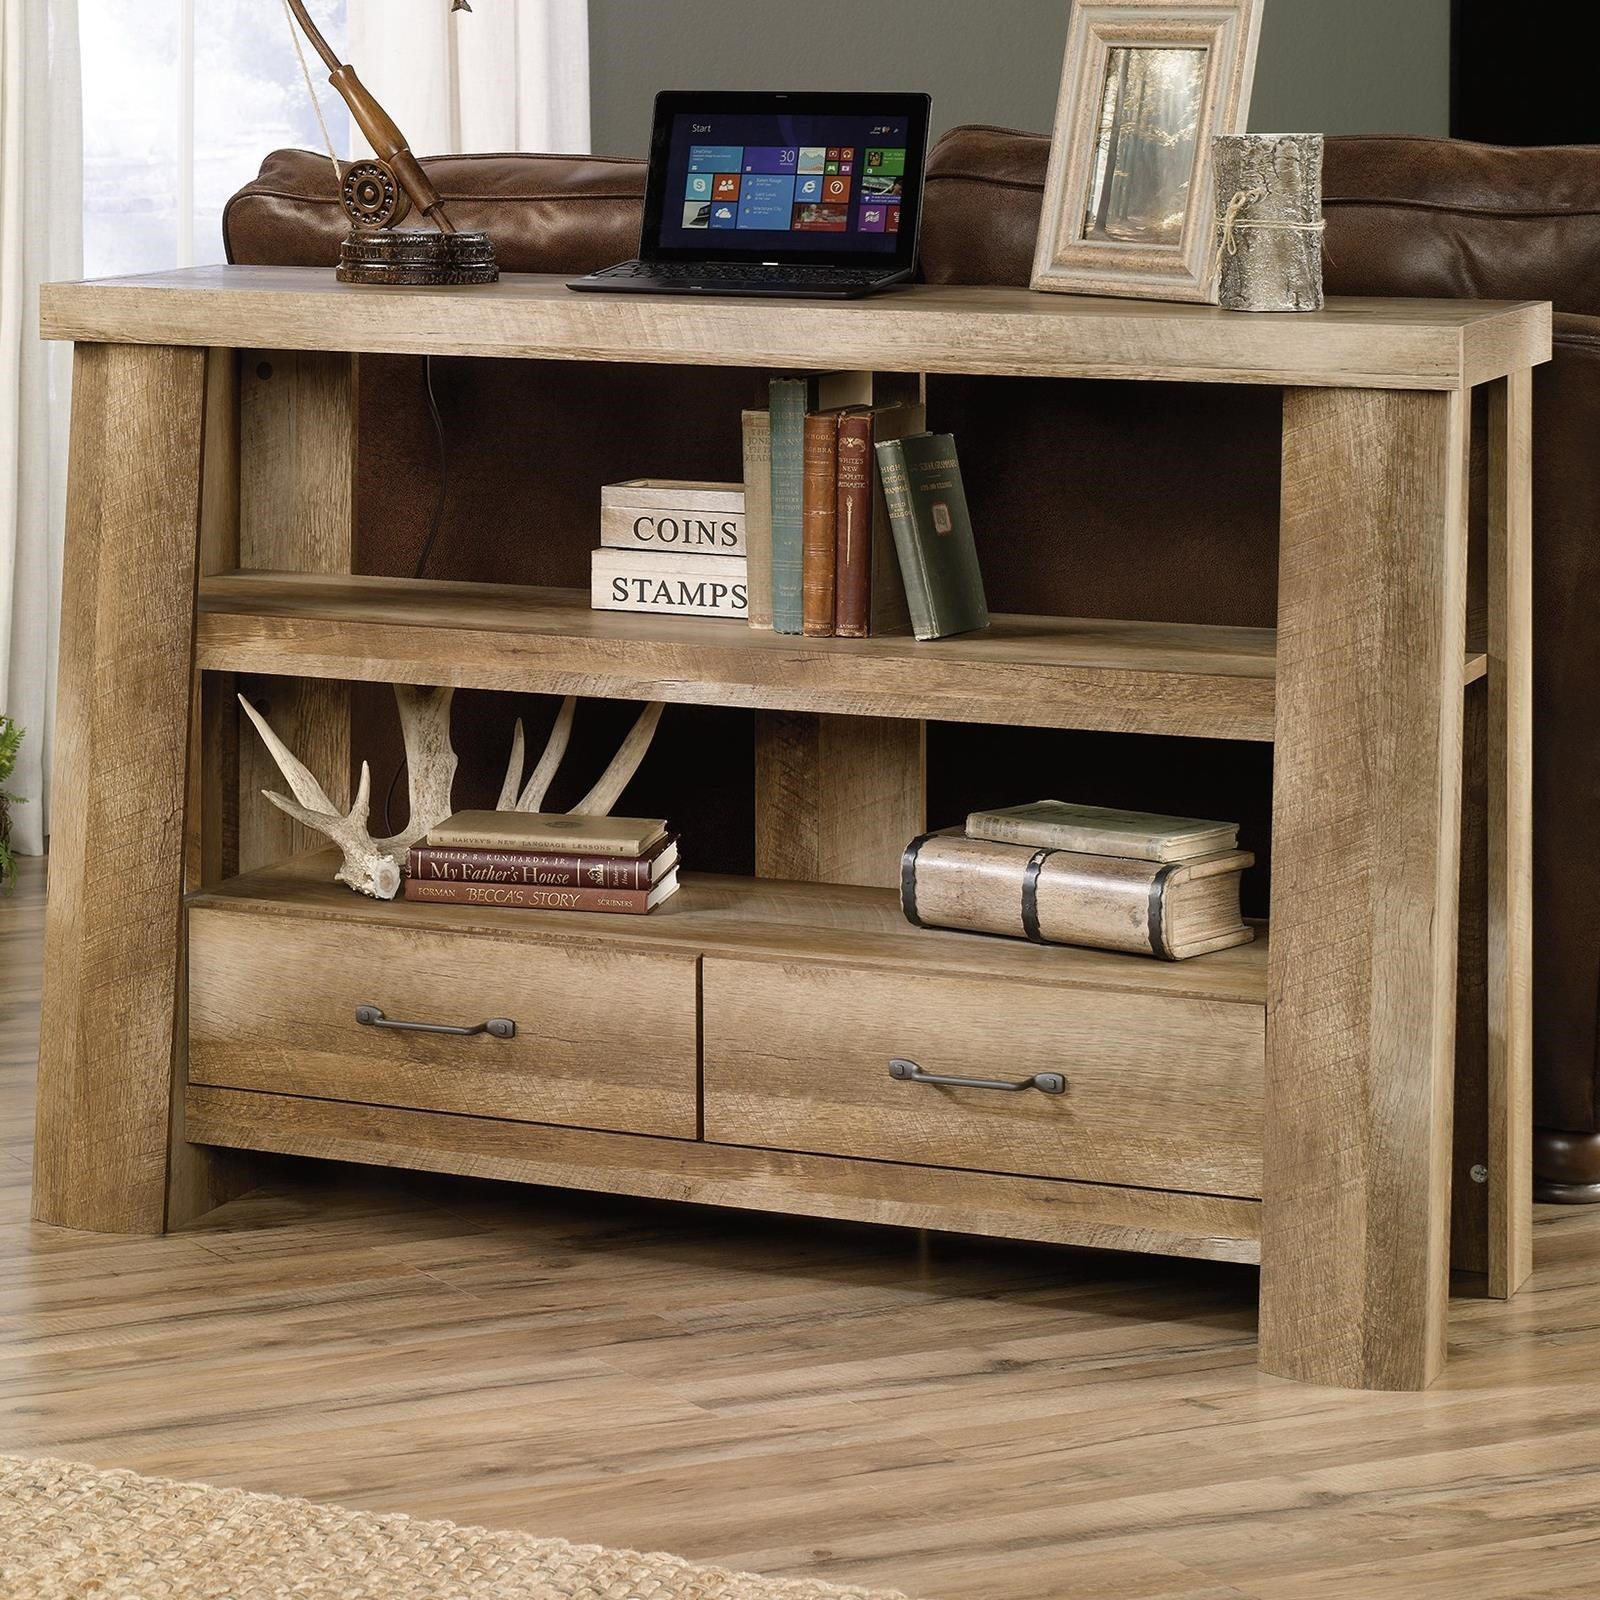 Sauder Boone Mountain Rustic Style Anywhere Console/TV Stand